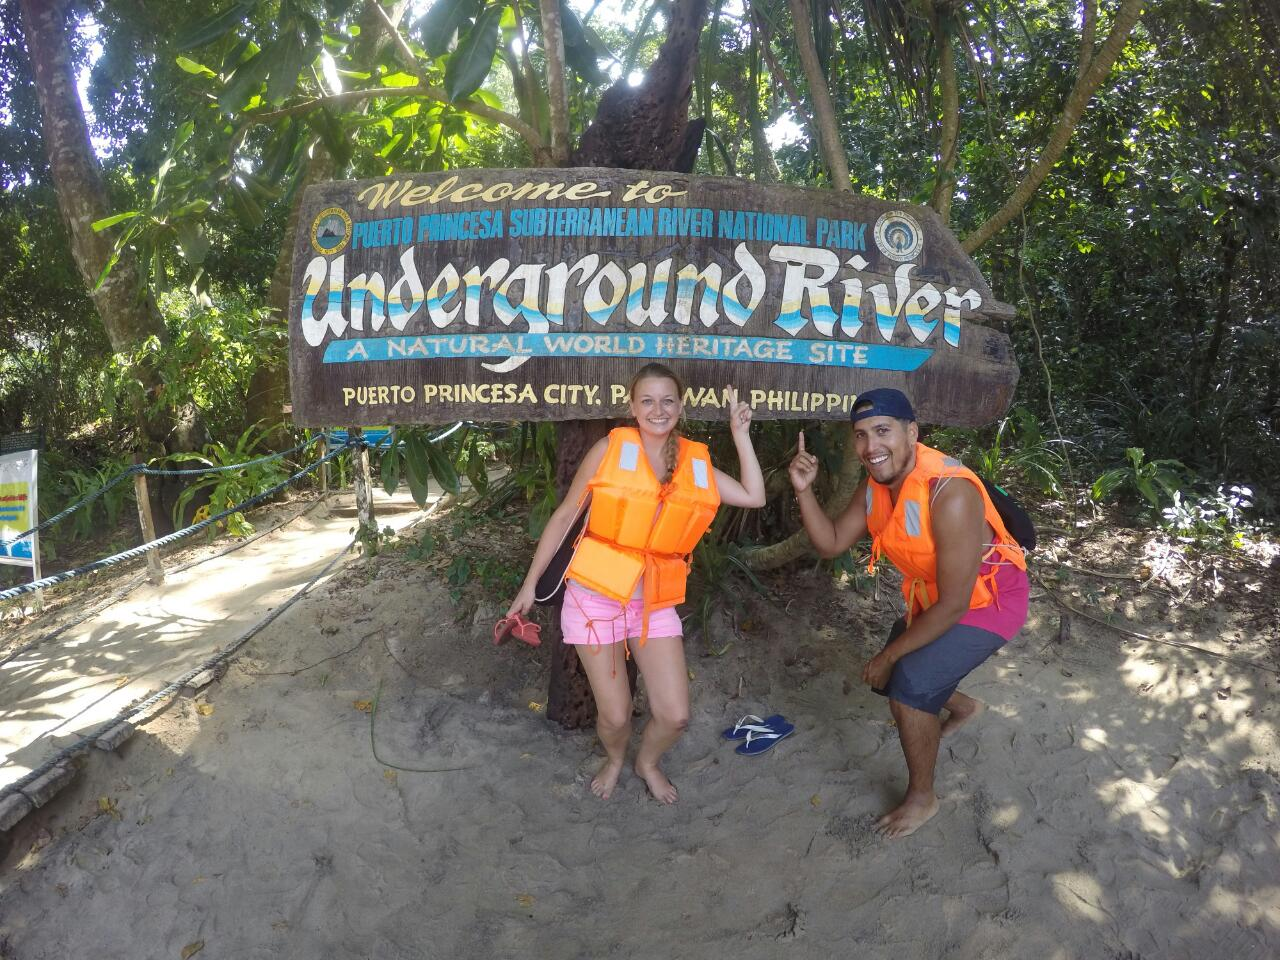 Underground-river-sign-palawan